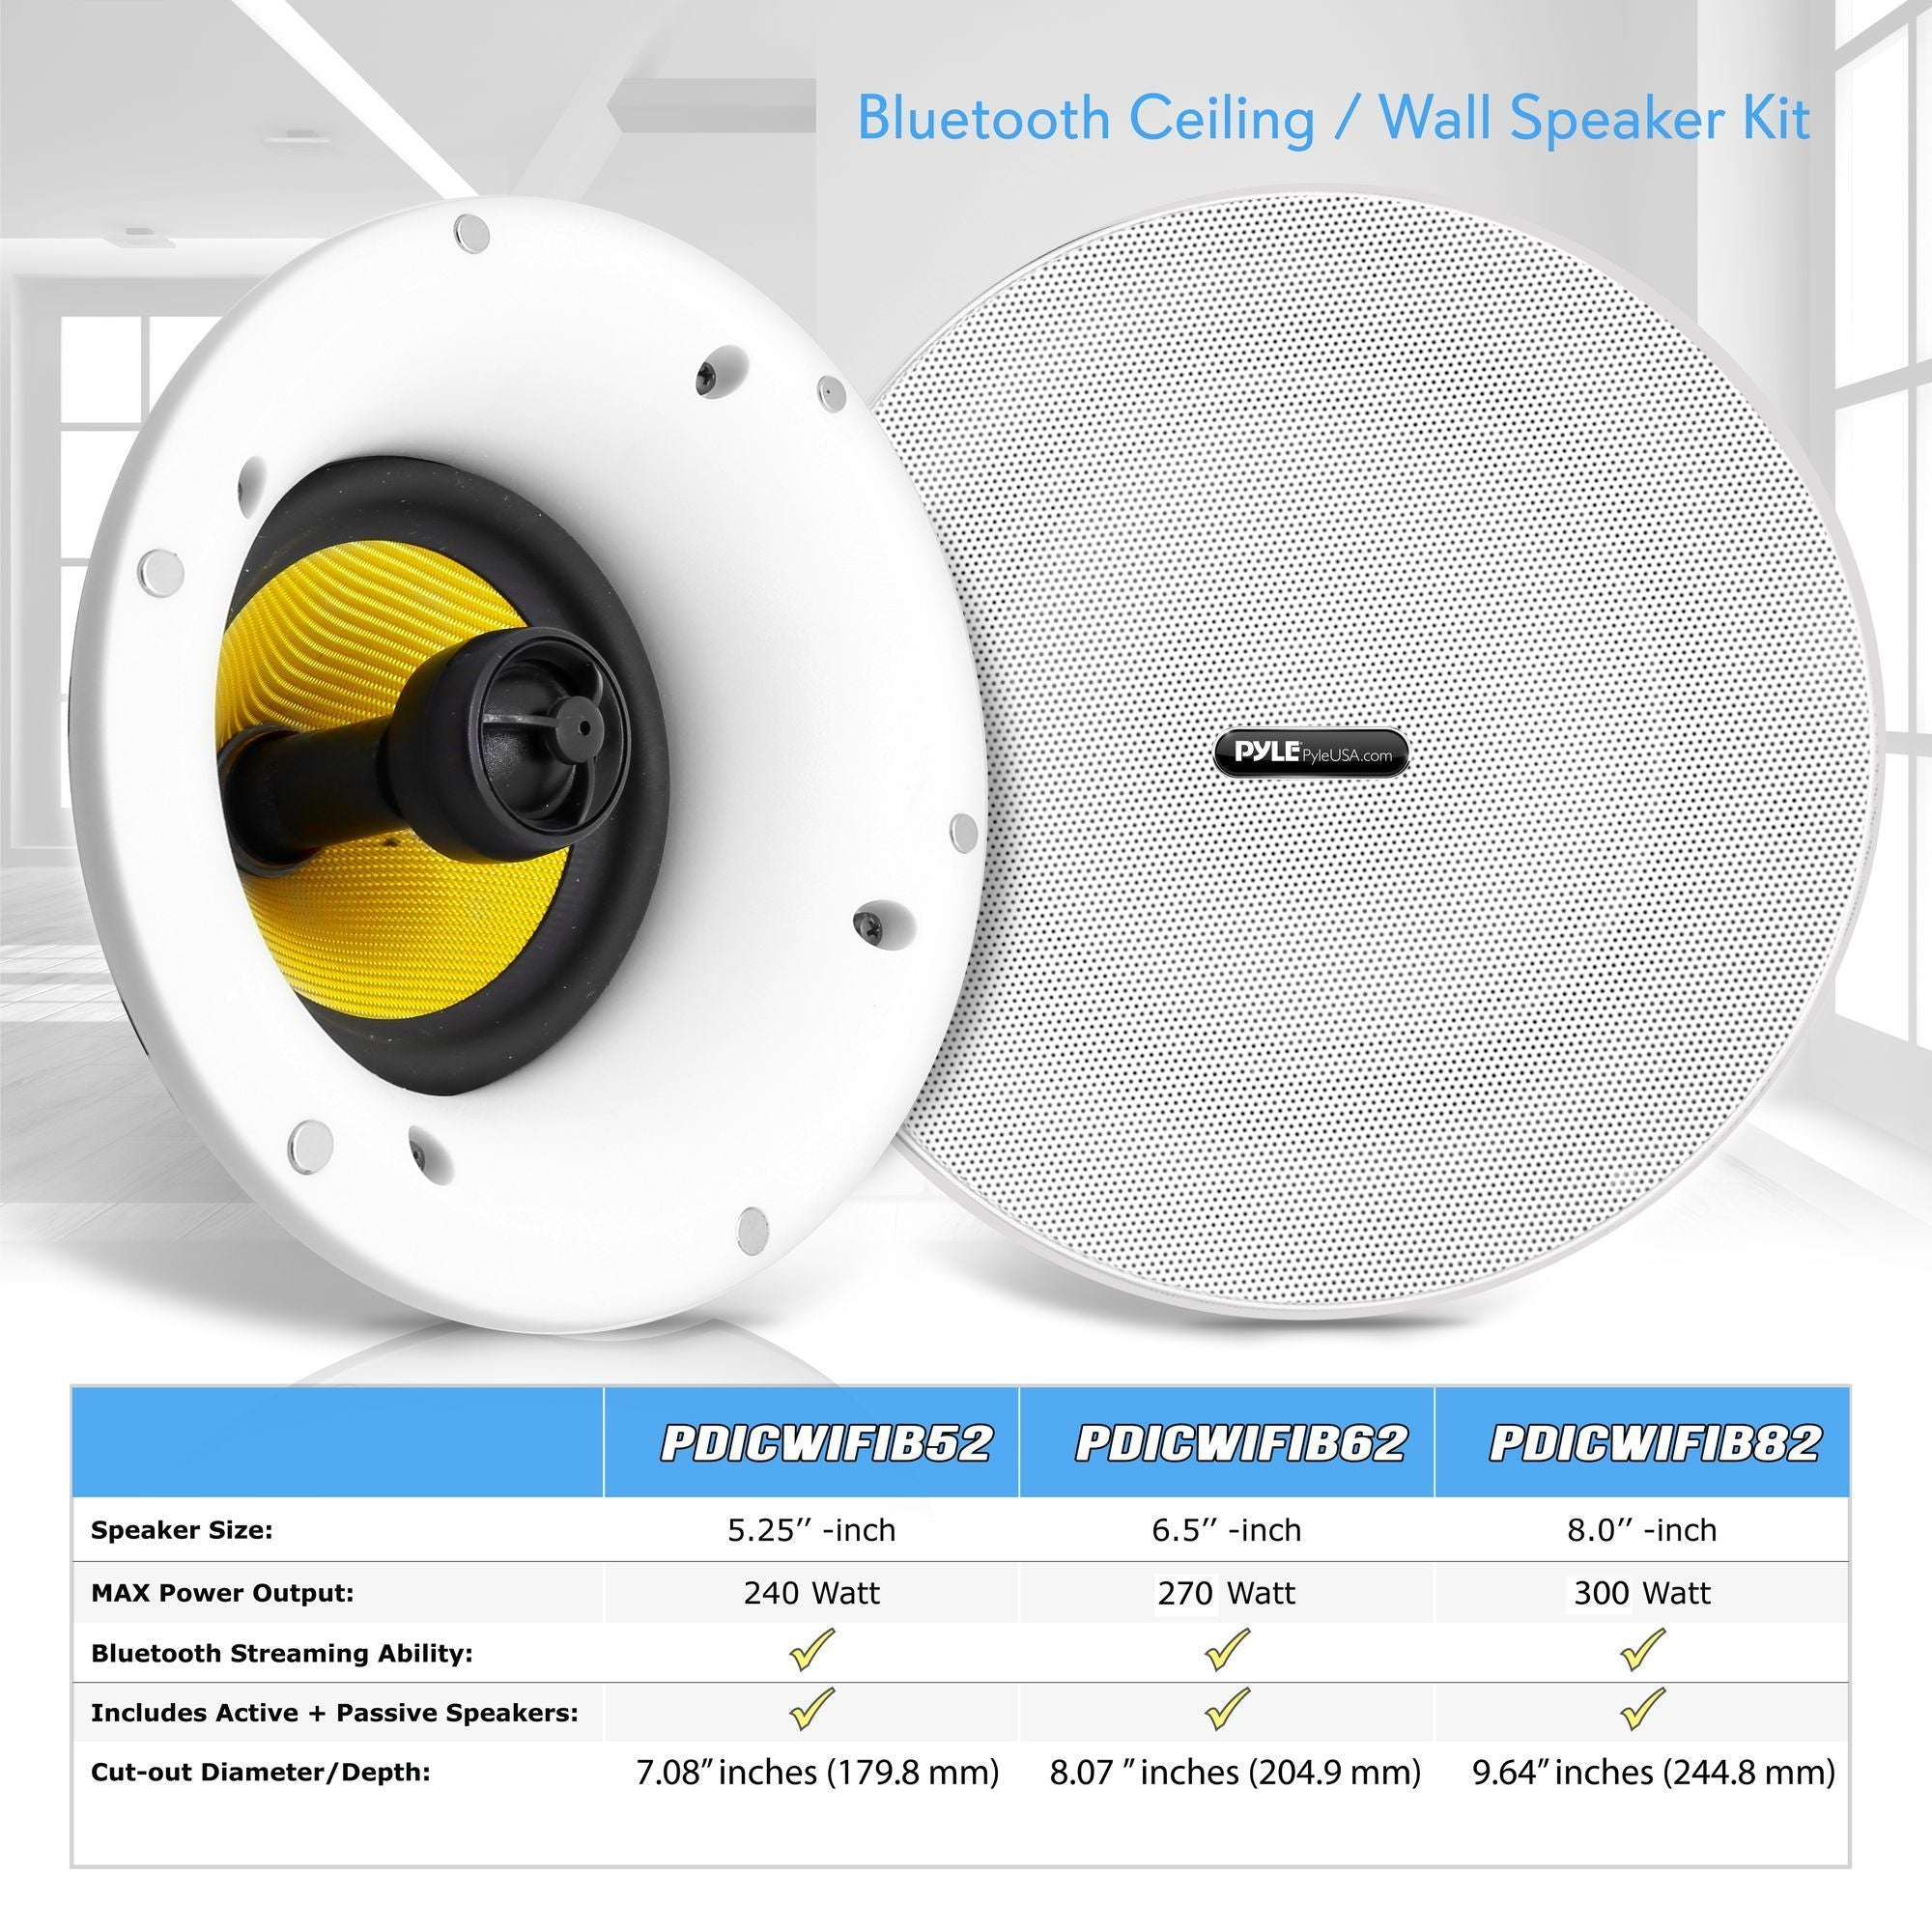 Pyle Pair of 8'' Ceiling Mount Speaker System, Bluetooth/WIFI, (9PDICWIFIB82)